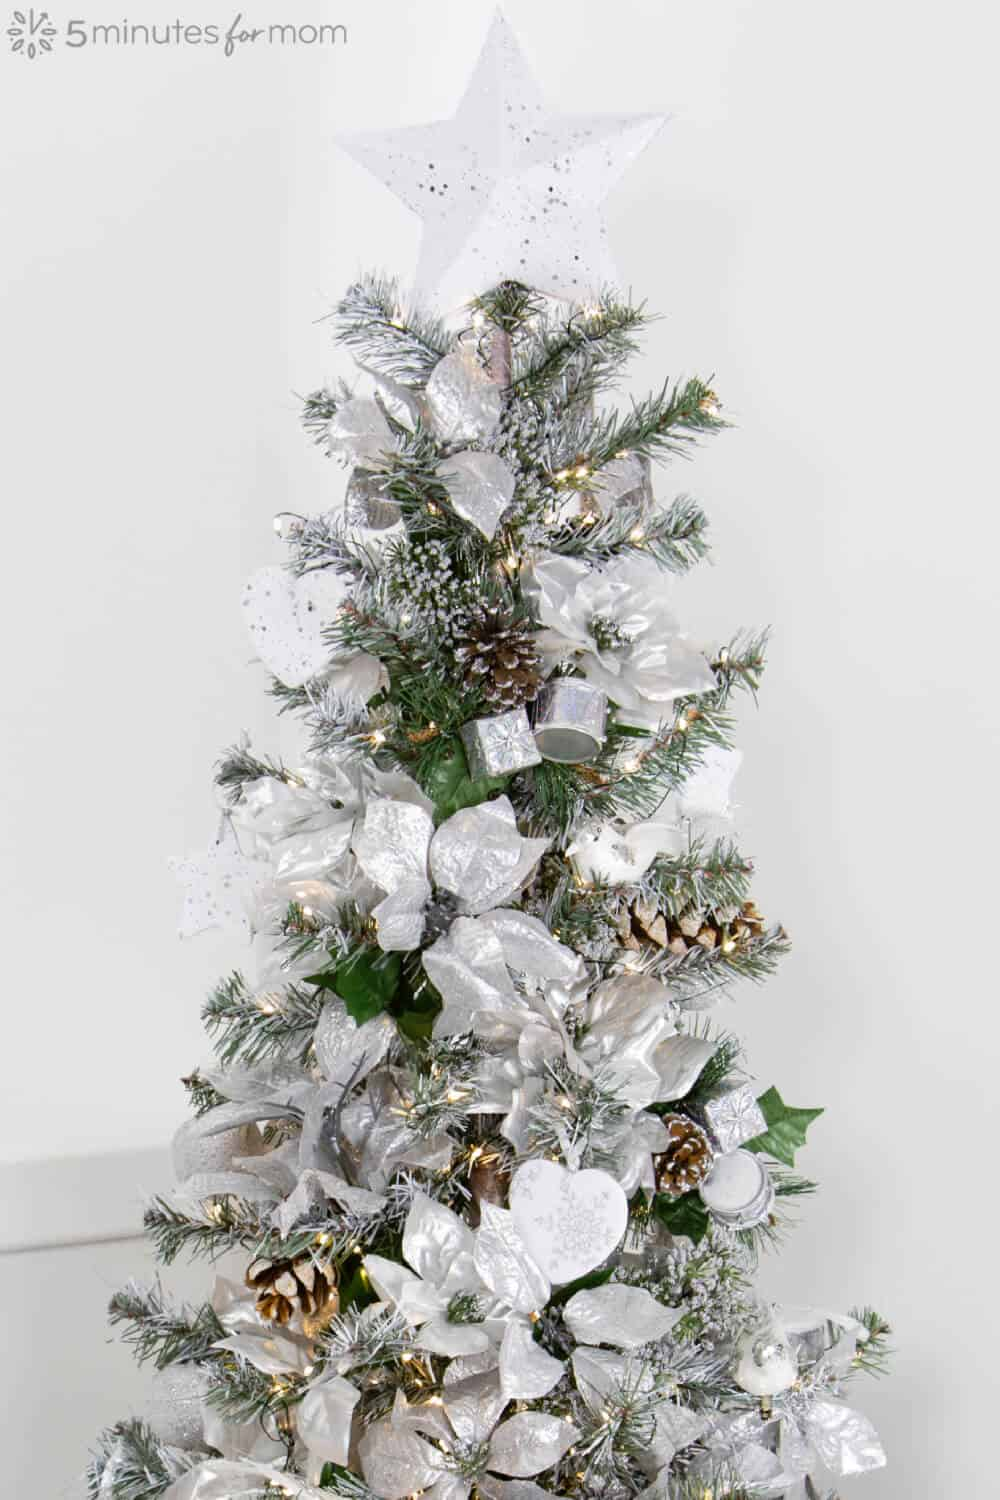 Silver and White Christmas Tree - Flocked Christmas Tree with Spray Paint